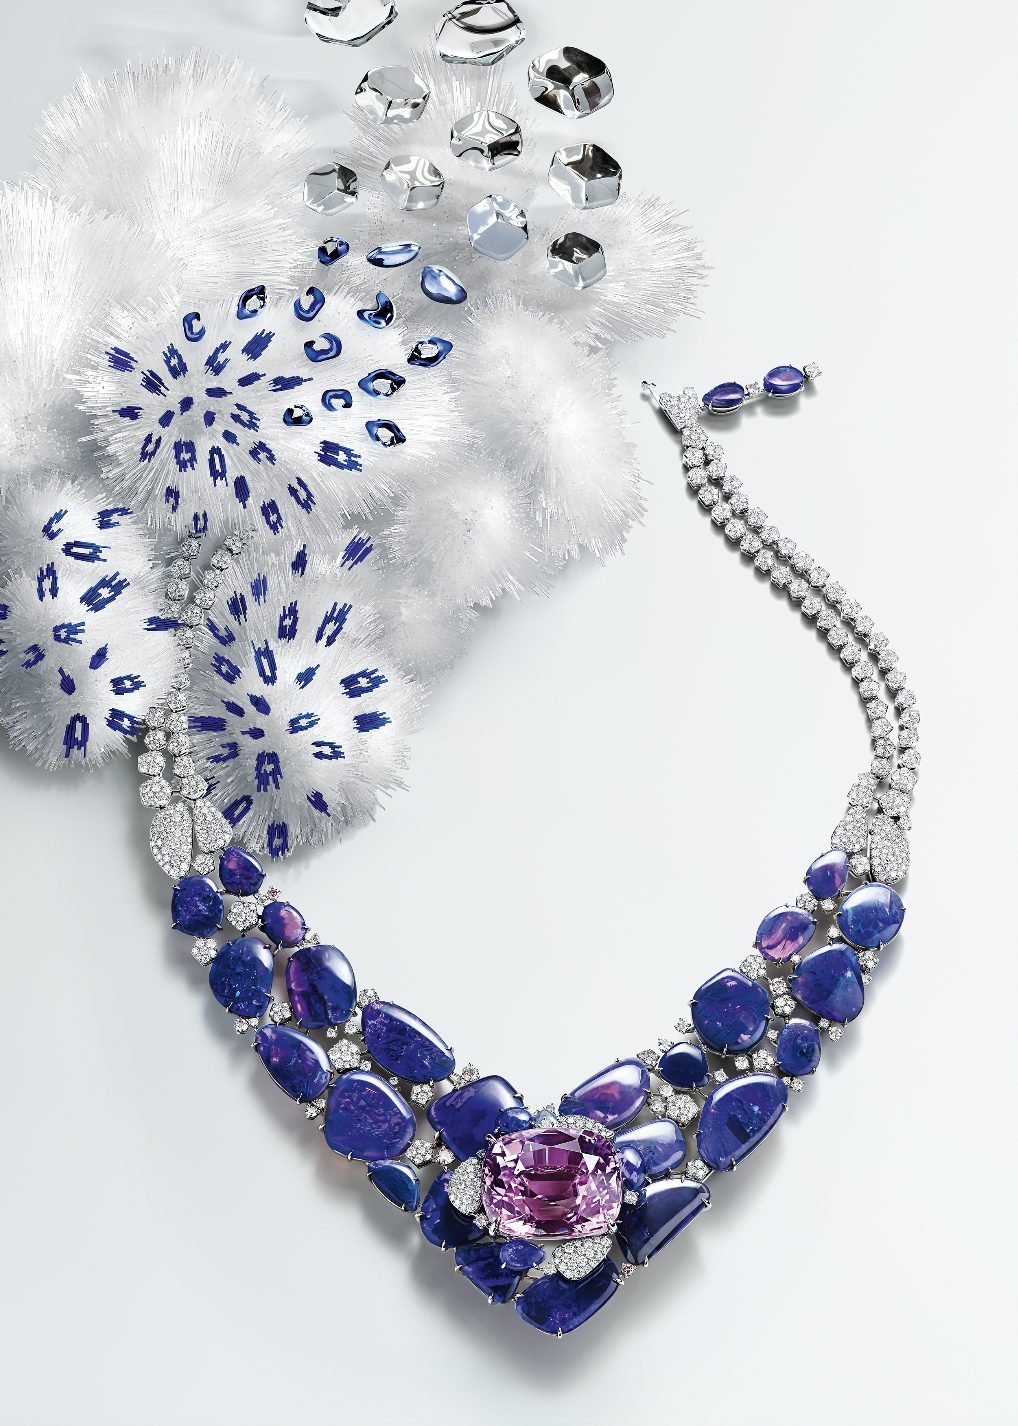 4 Things We Adore Most From Cartier's [Sur]Naturel High Jewellery Collection